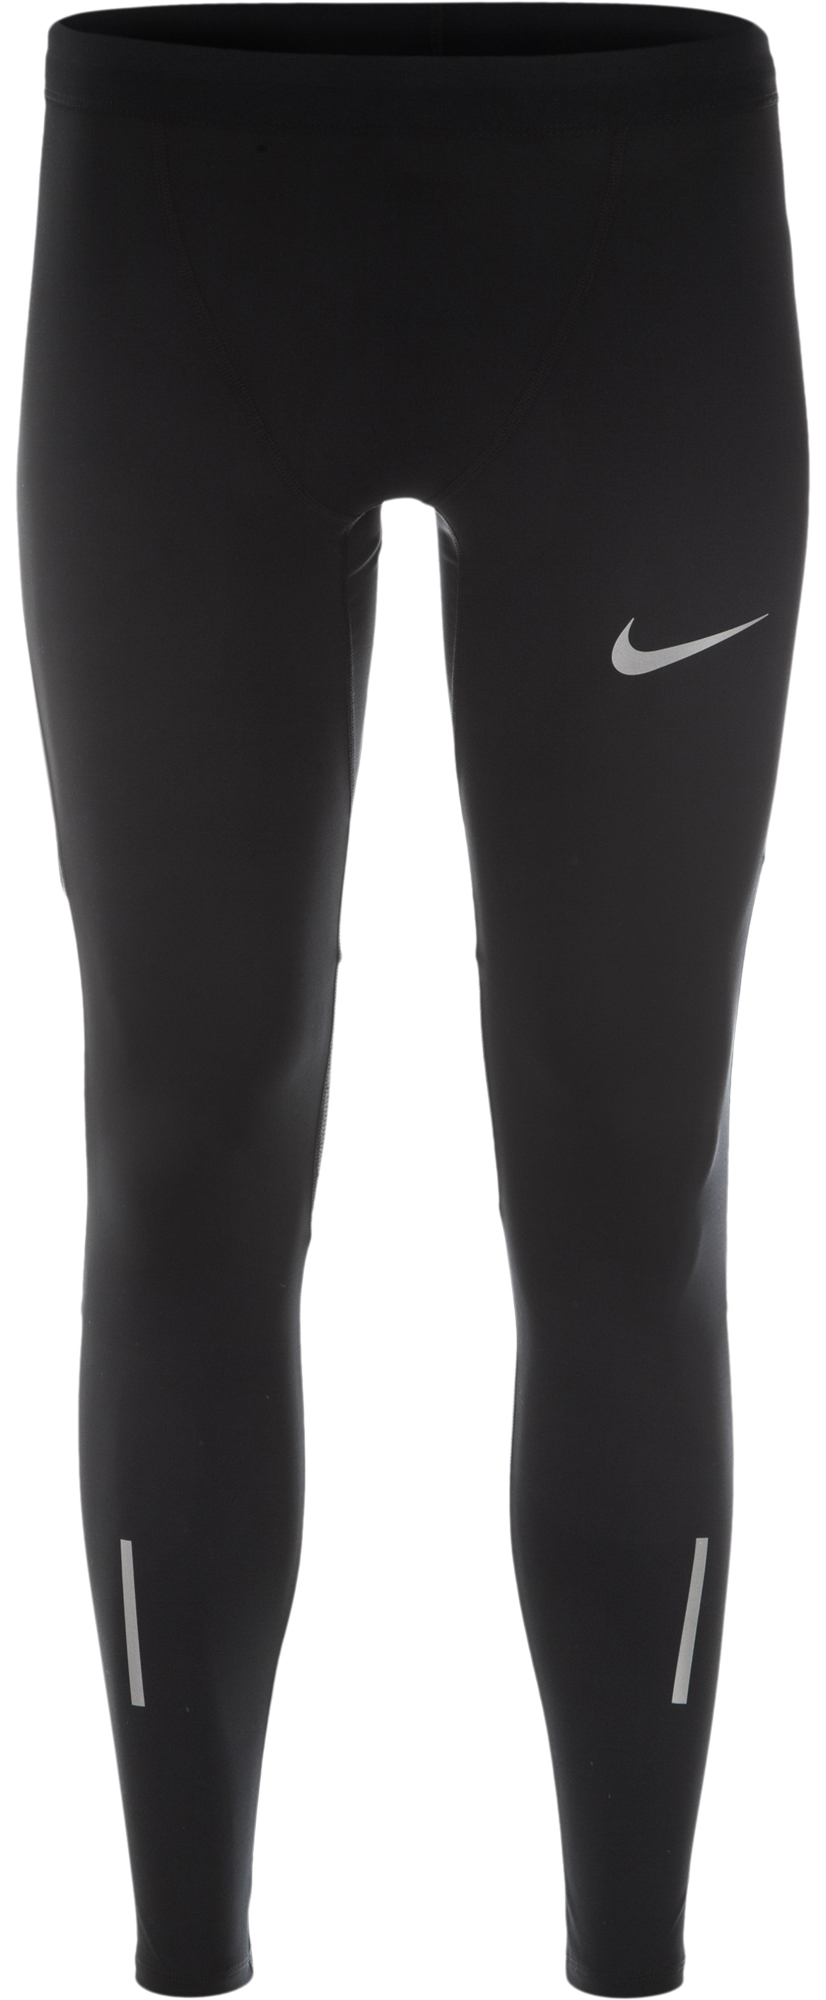 Nike Тайтсы мужские Nike Power Tech, размер 52-54 nike nike select strike tech pant